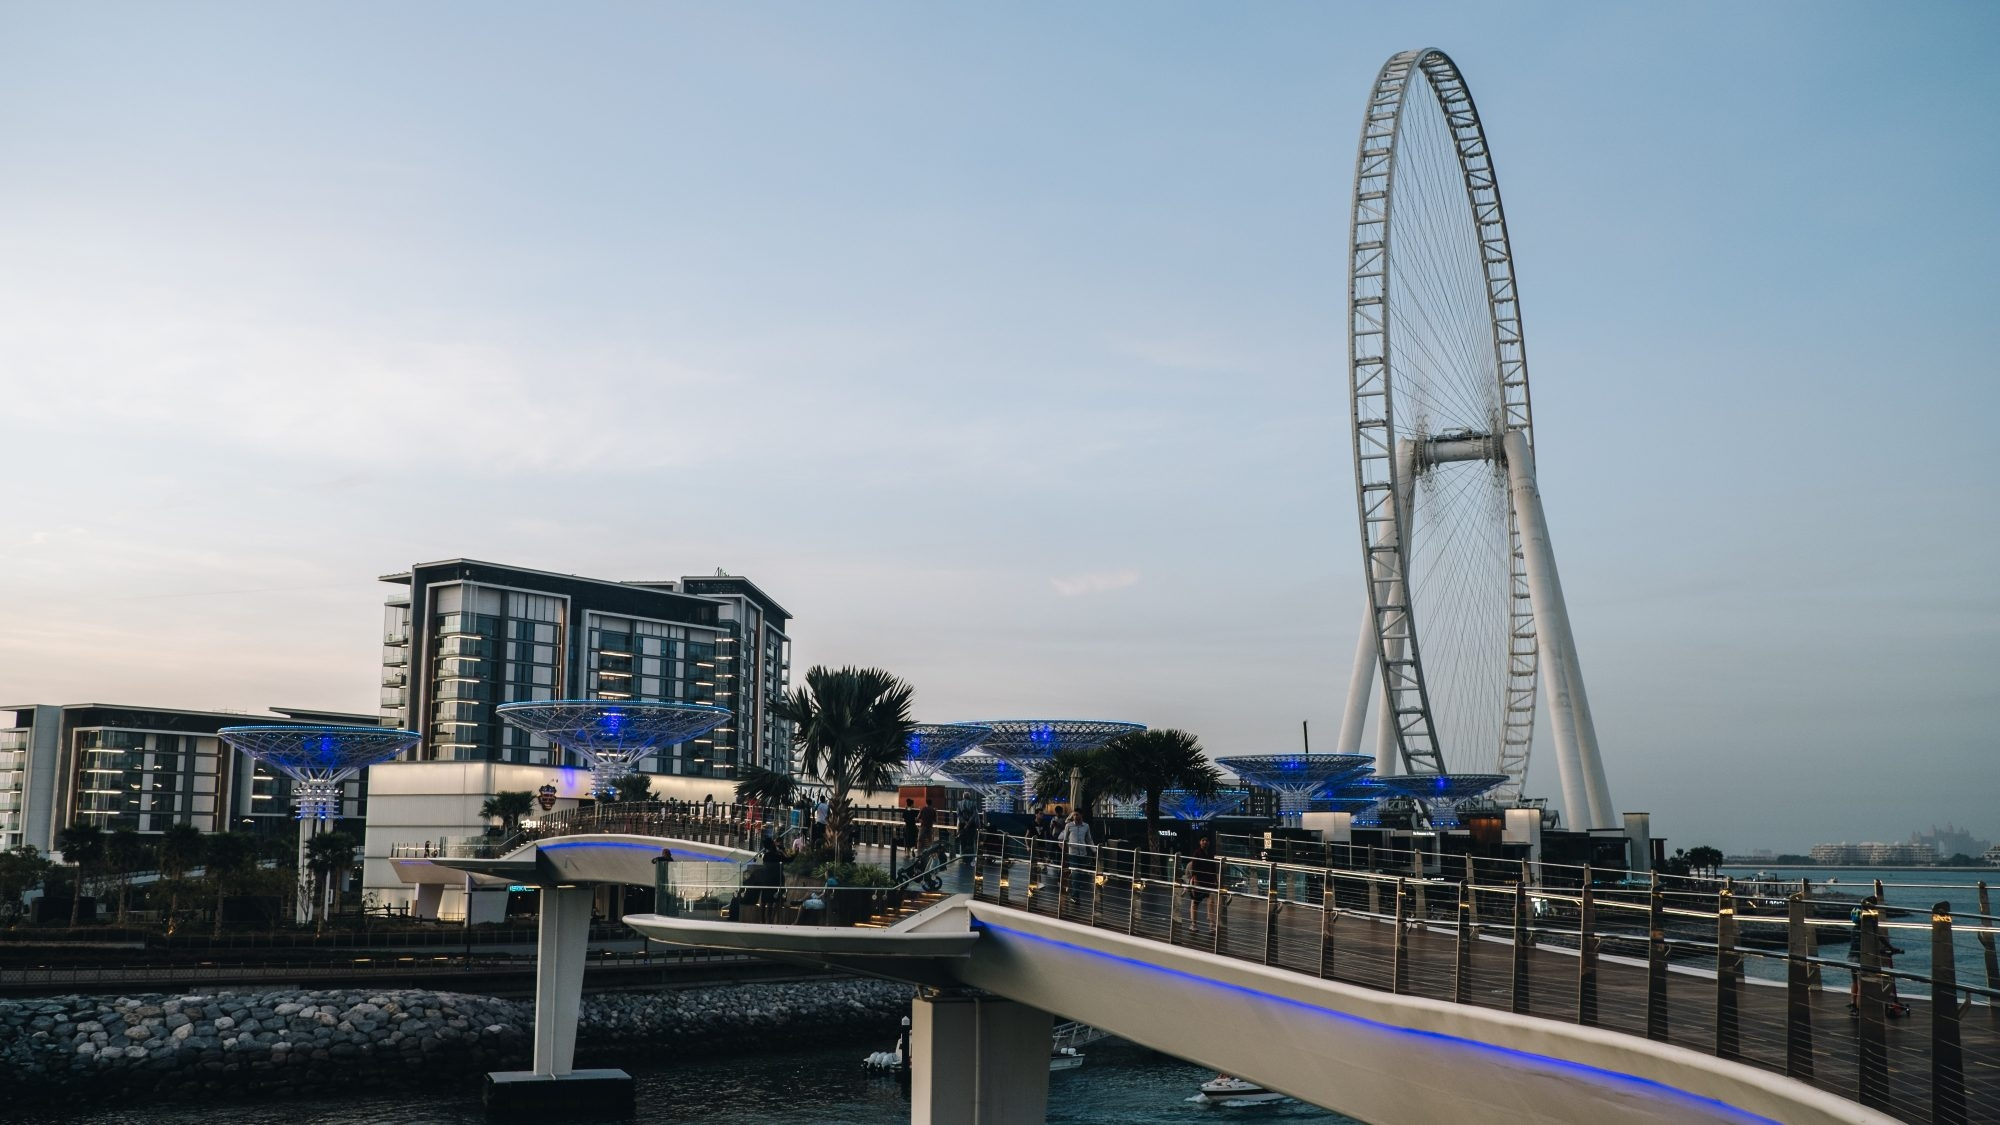 Bluewaters Island - Dubaï